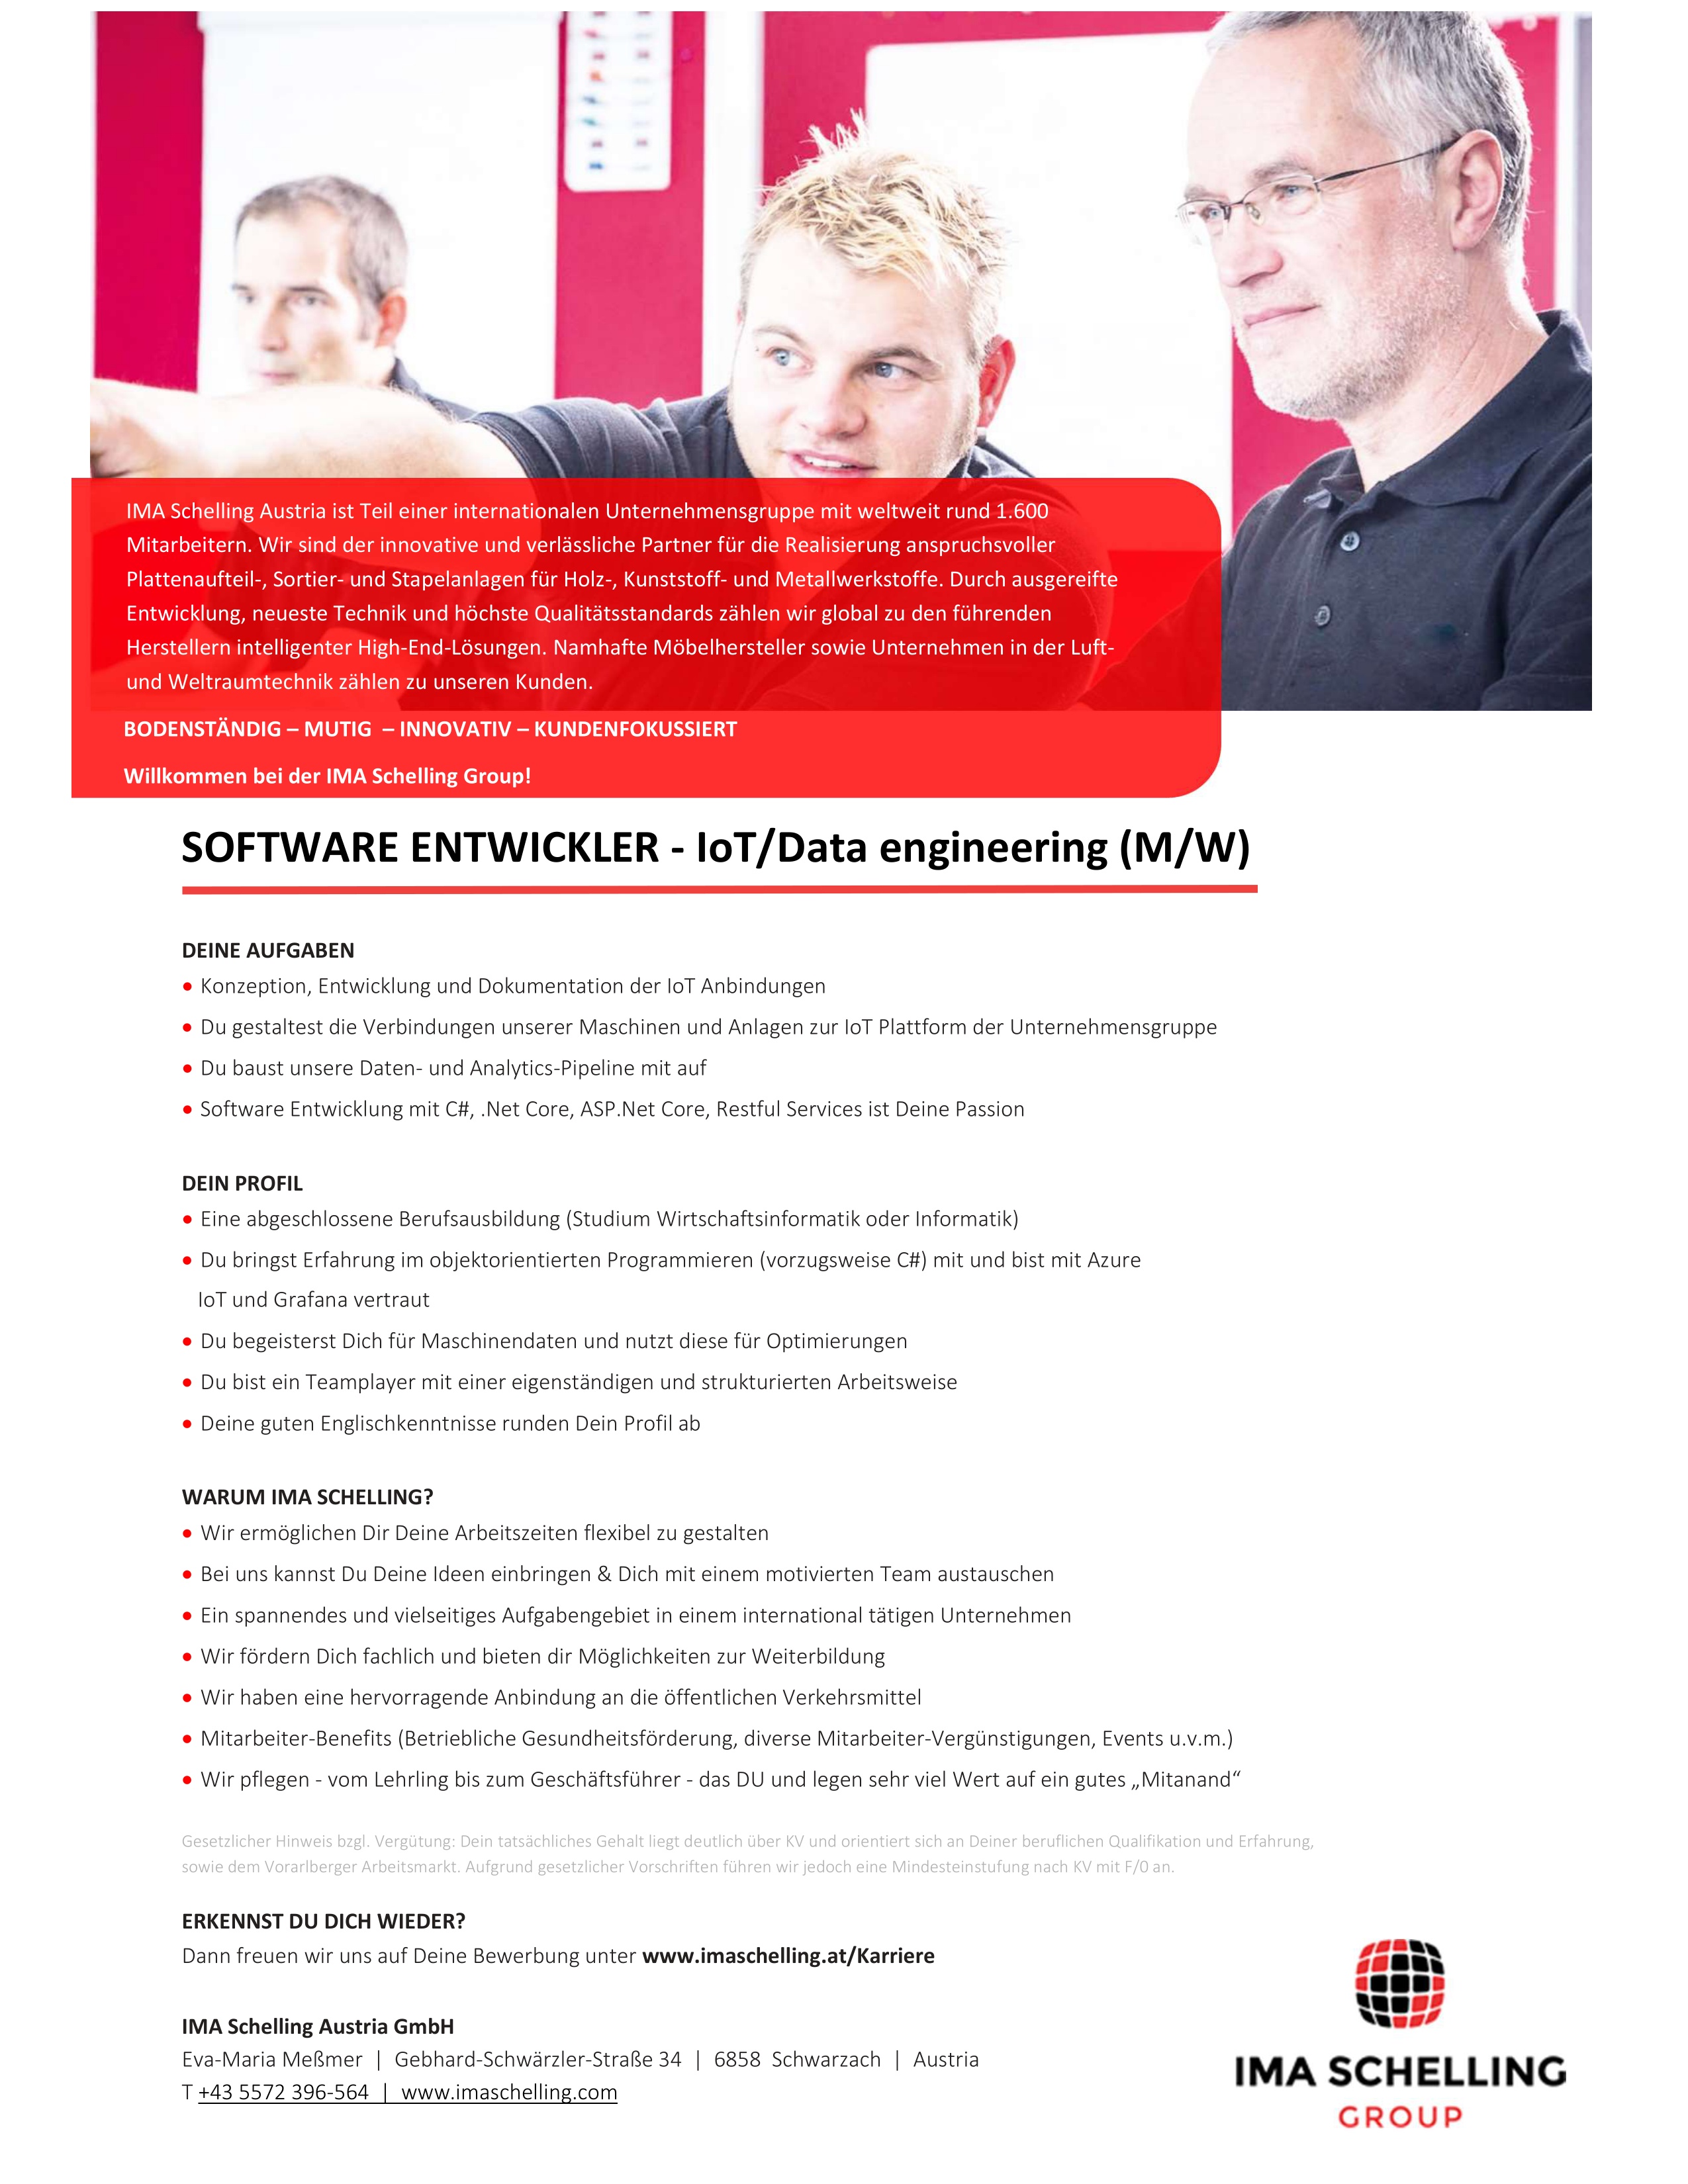 Software Entwickler - IoT/Data engineering (m/w)